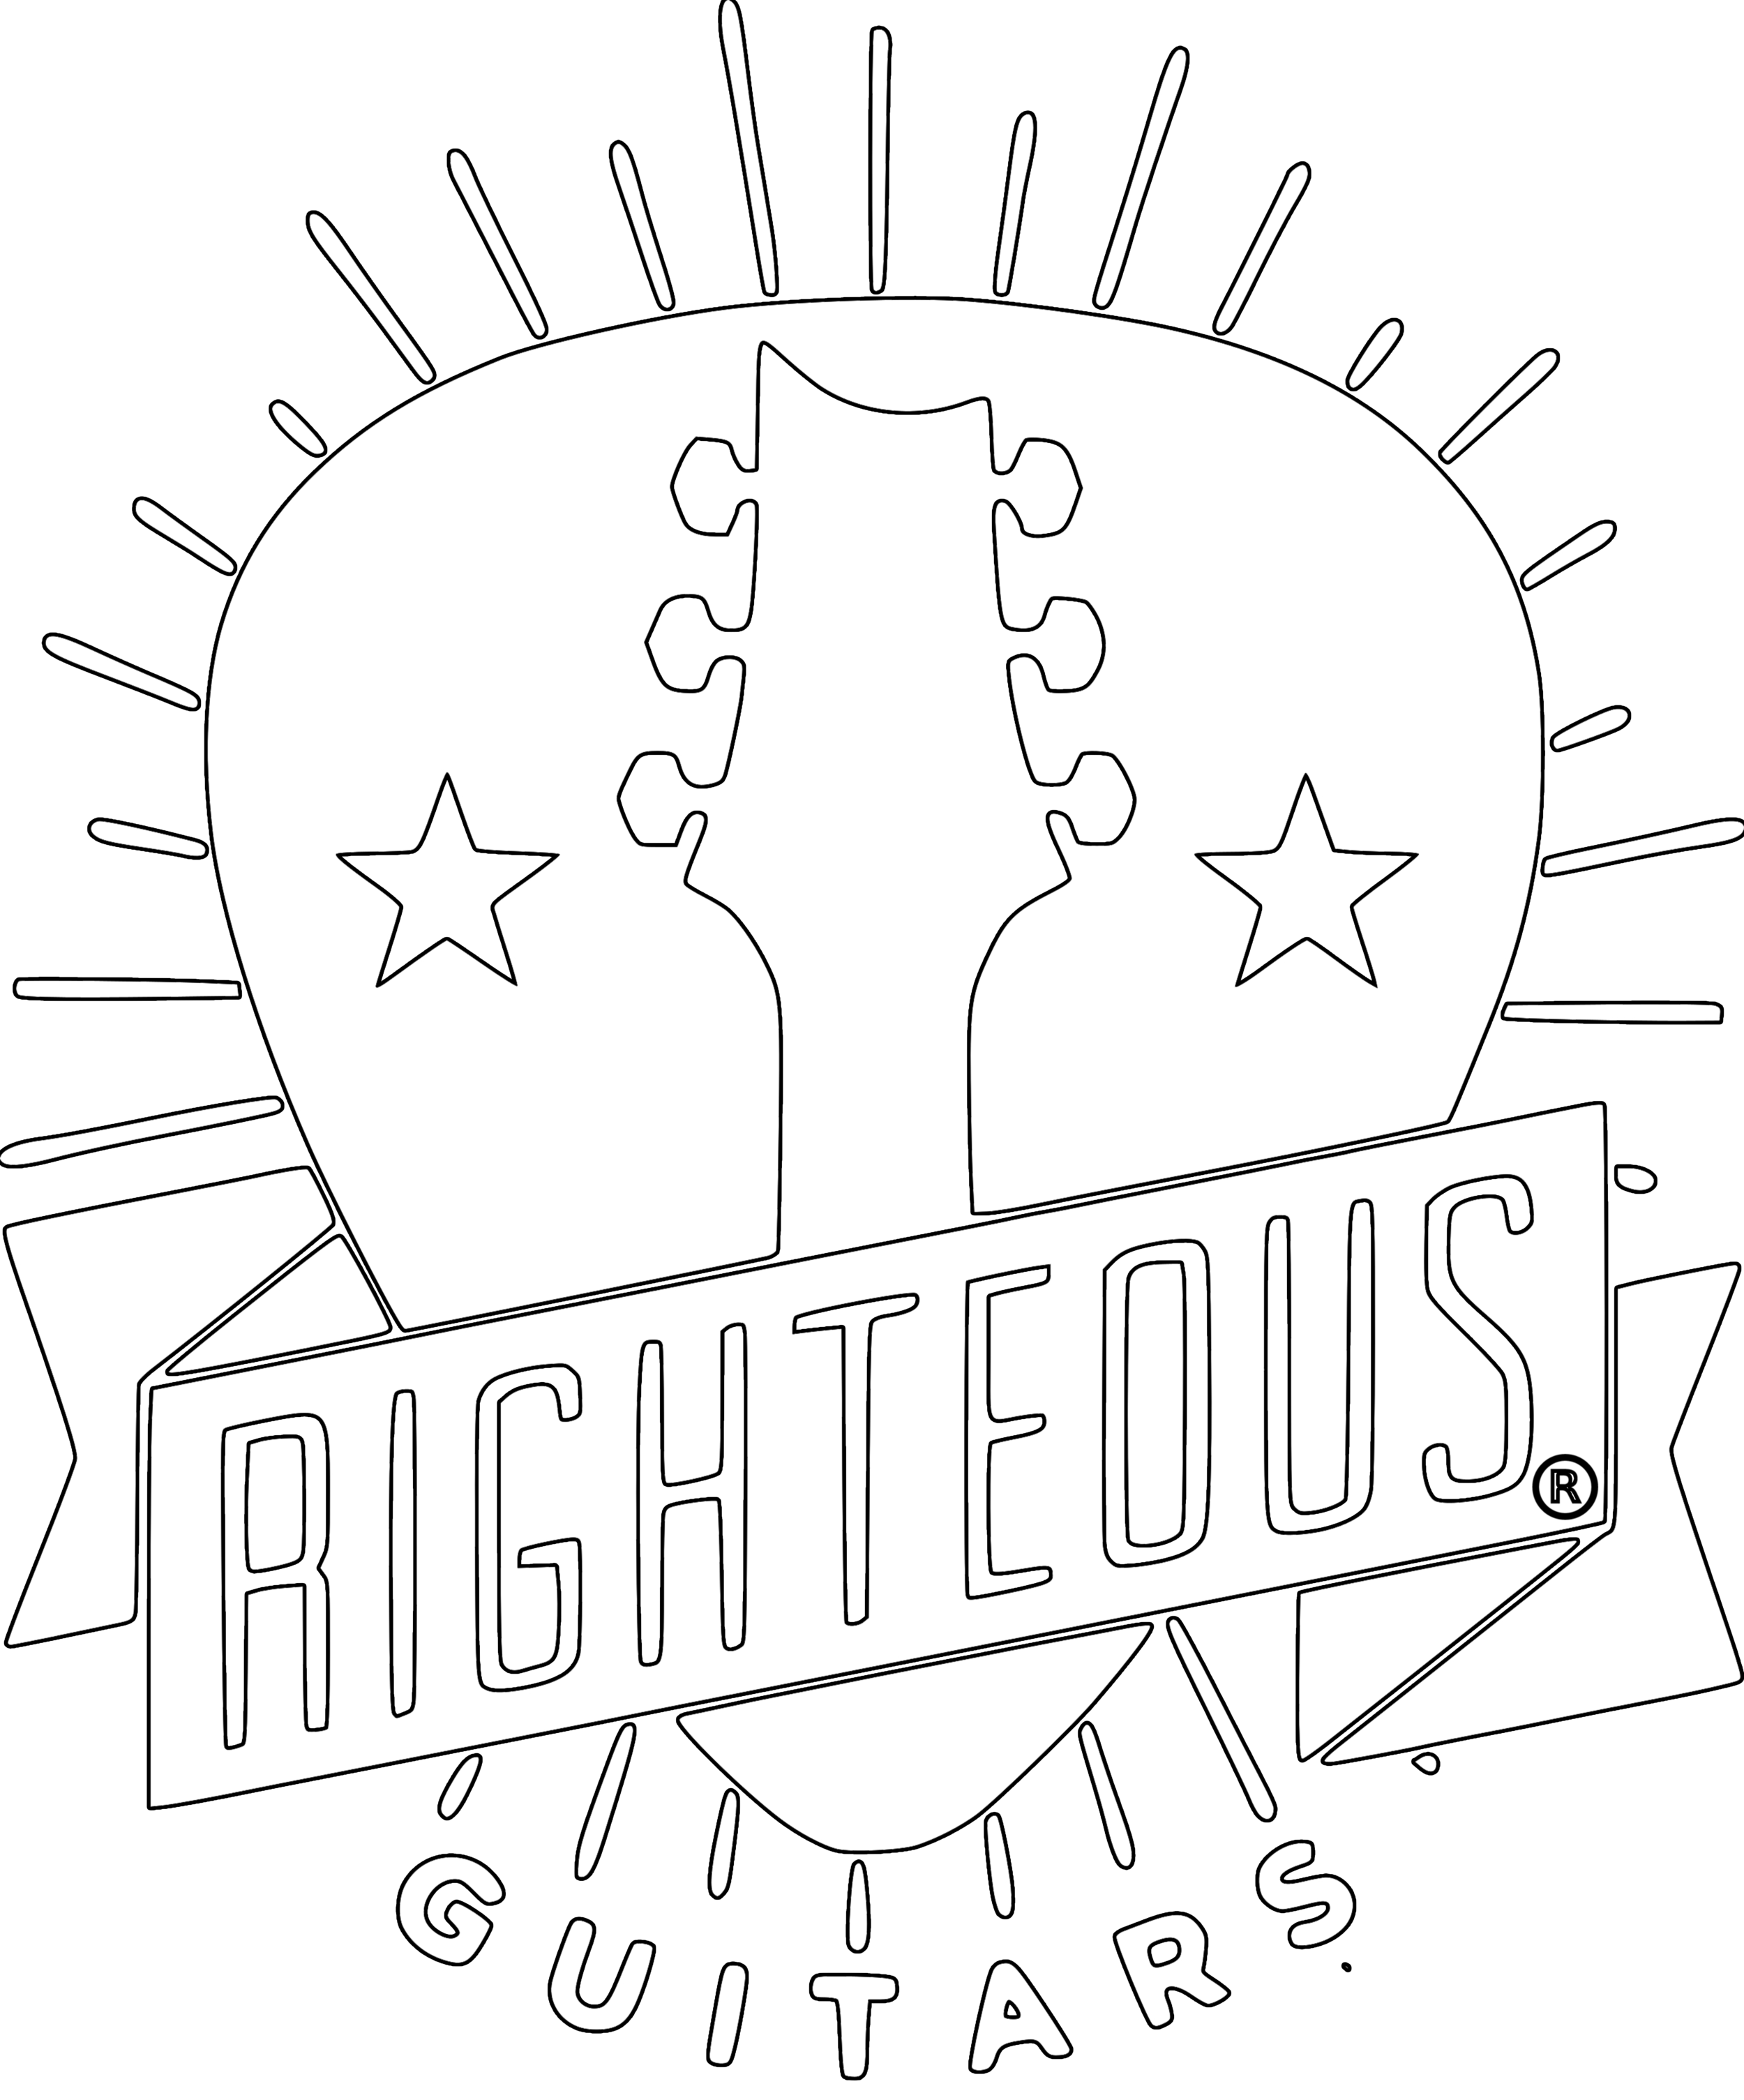 Righteous-Logo-Jpeg-White-Registered-outlined.png